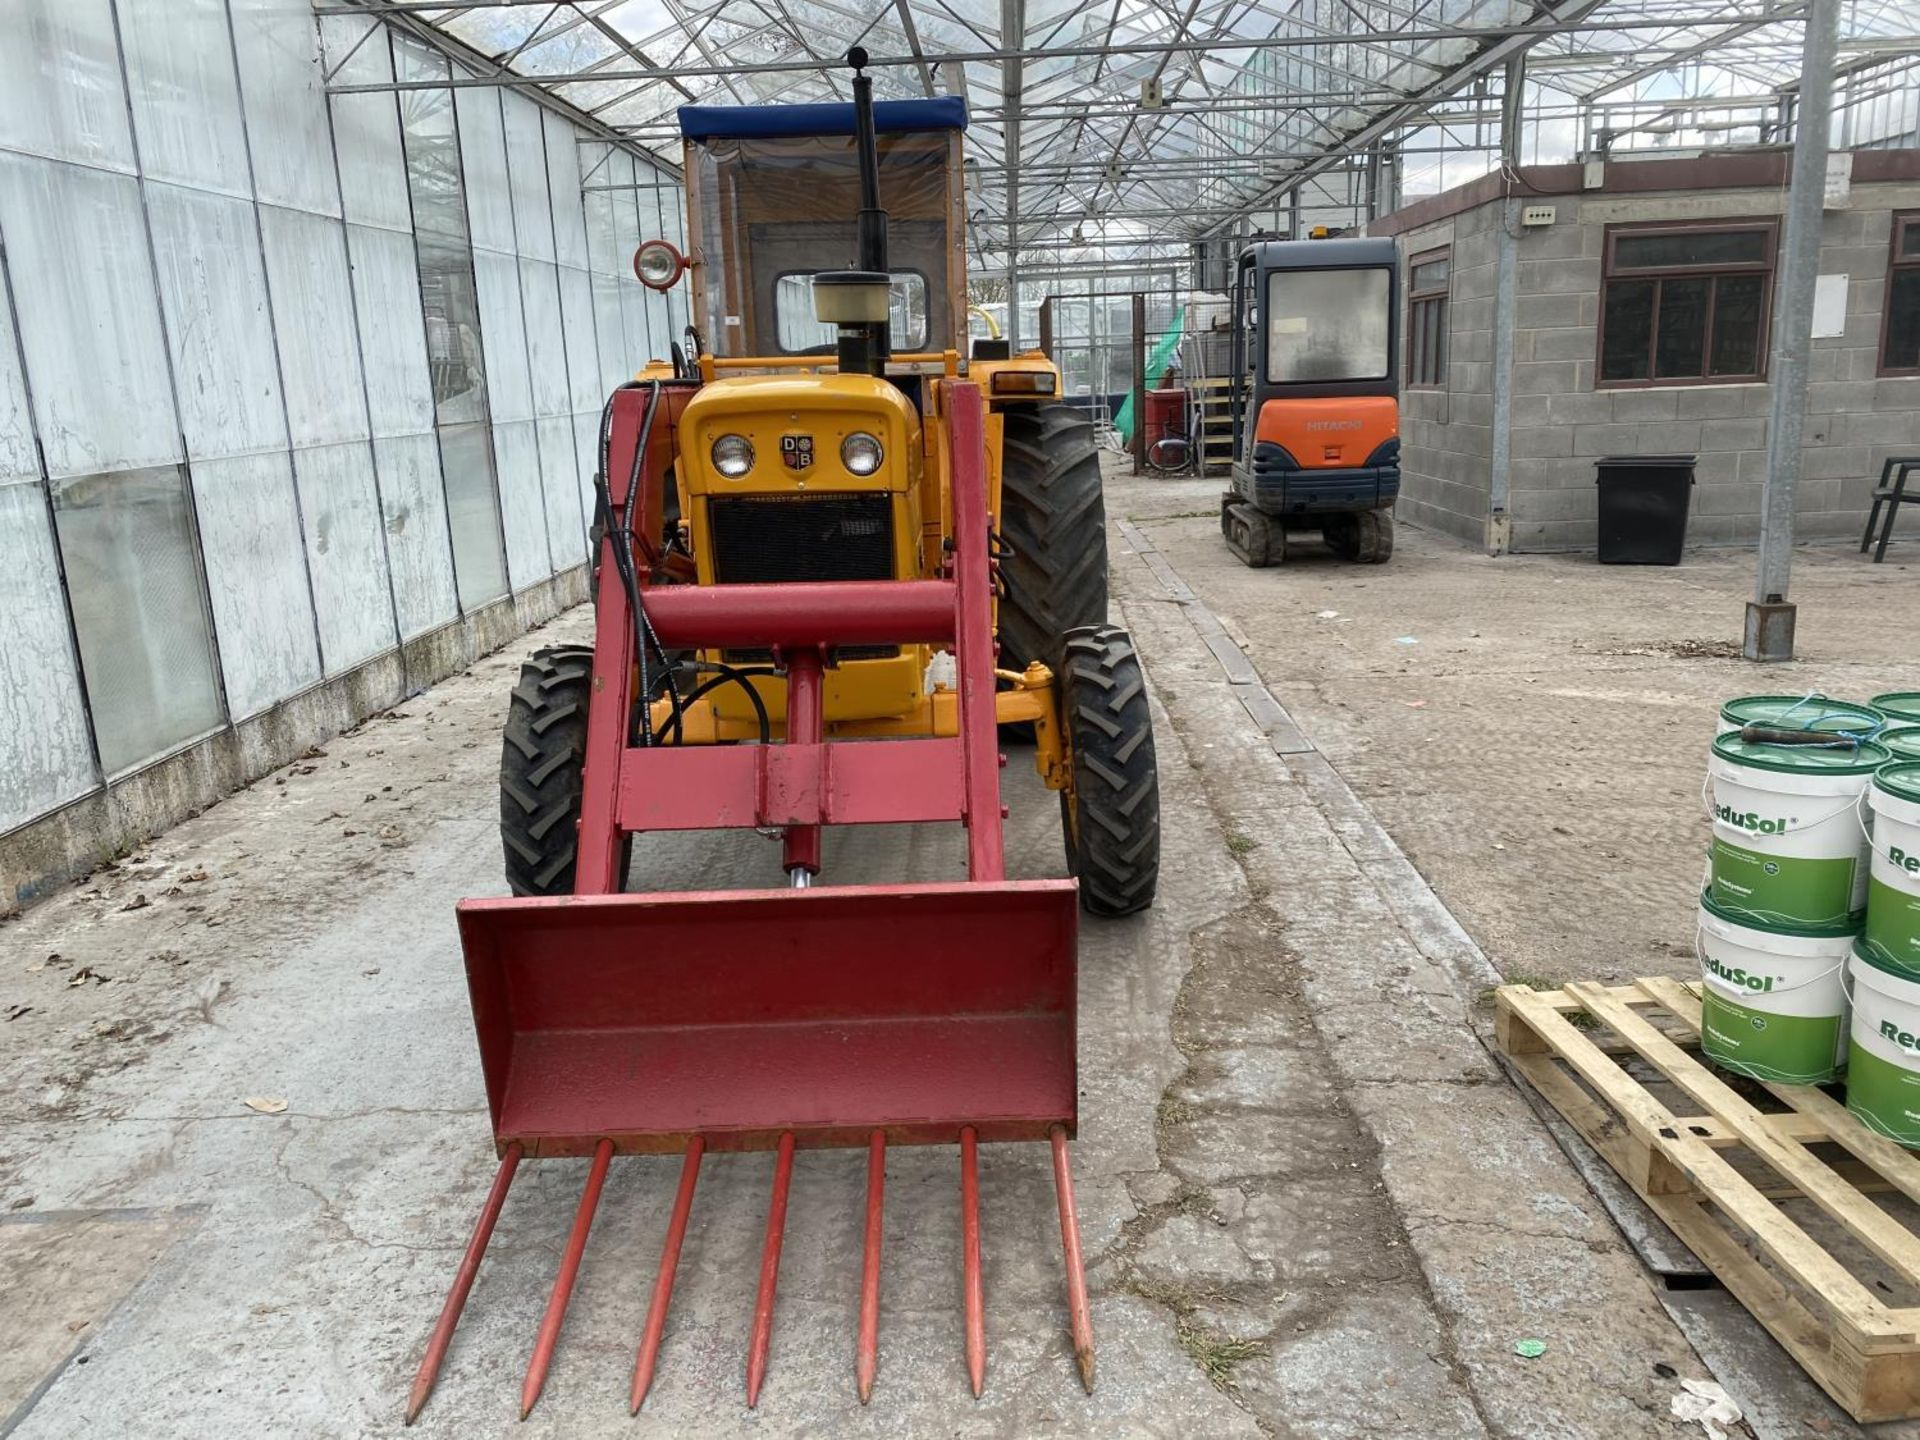 A DAVID BROWN 995 TRACTOR WITH FORE END LOADER AND MANURE FORK 3779 HOURS - Image 11 of 11